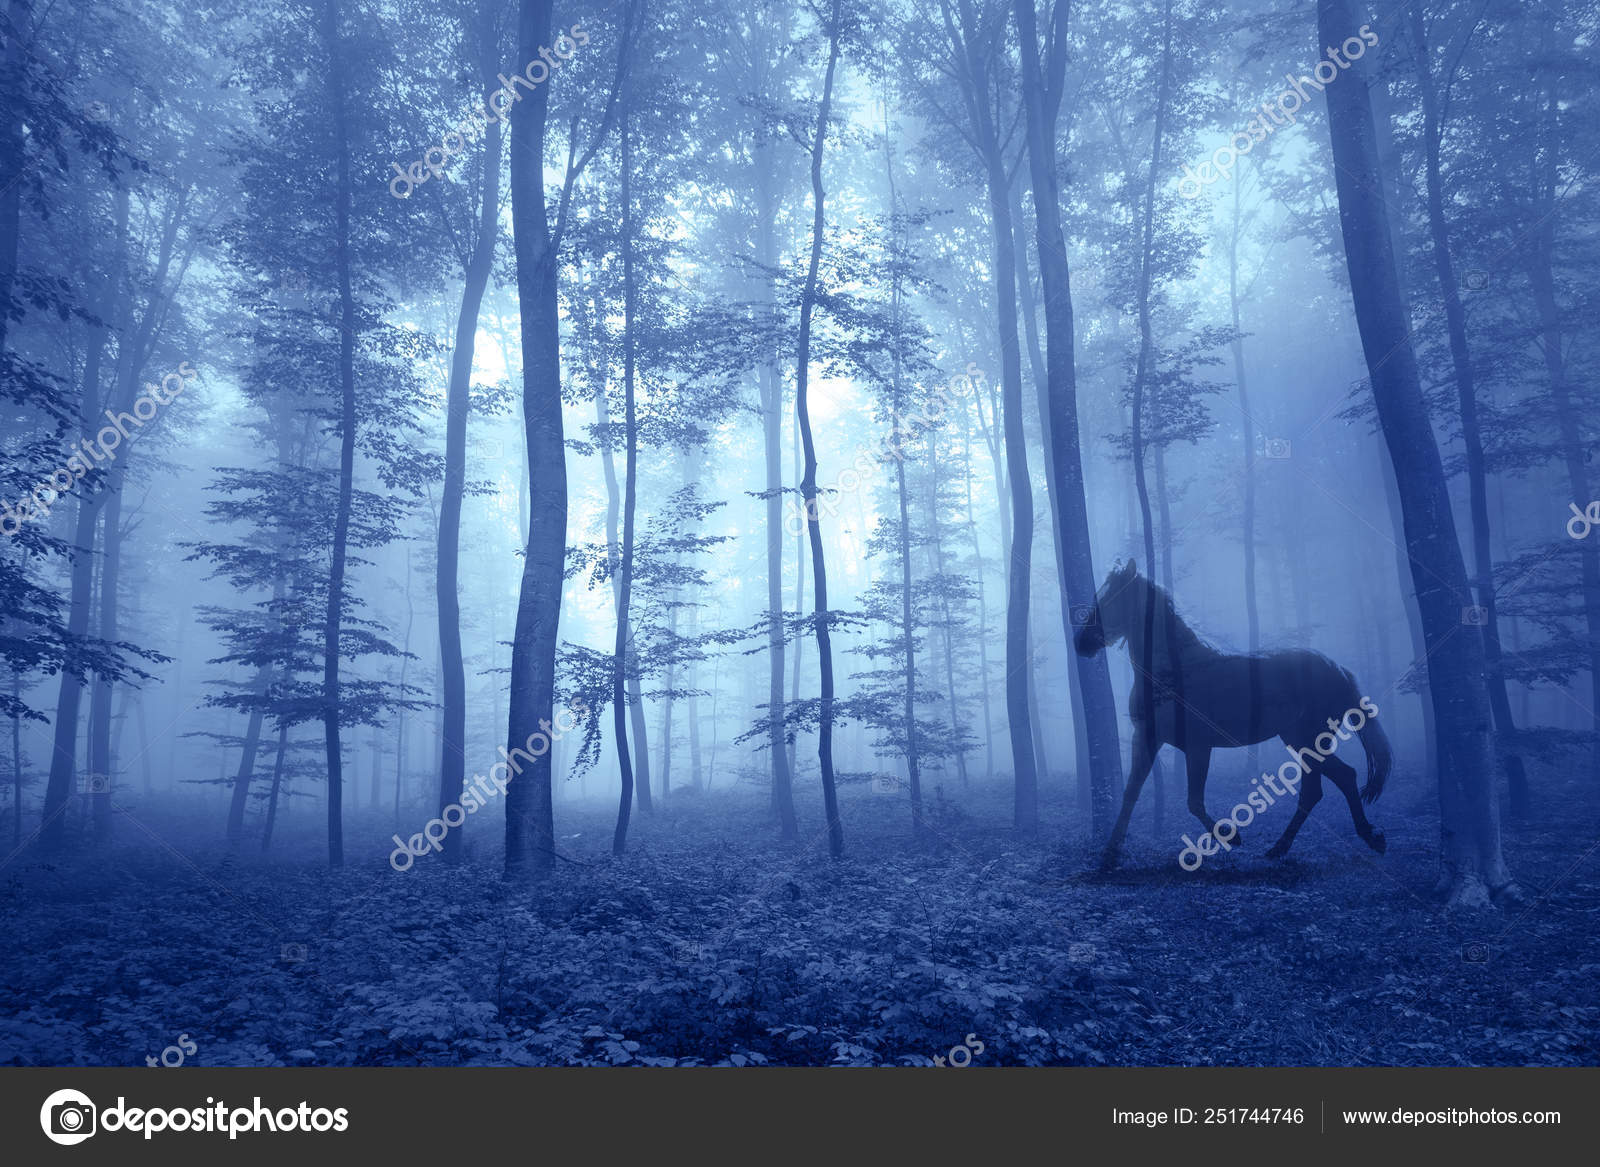 Magic Foggy Forest With Running Horse Stock Photo C Robsonphoto 251744746